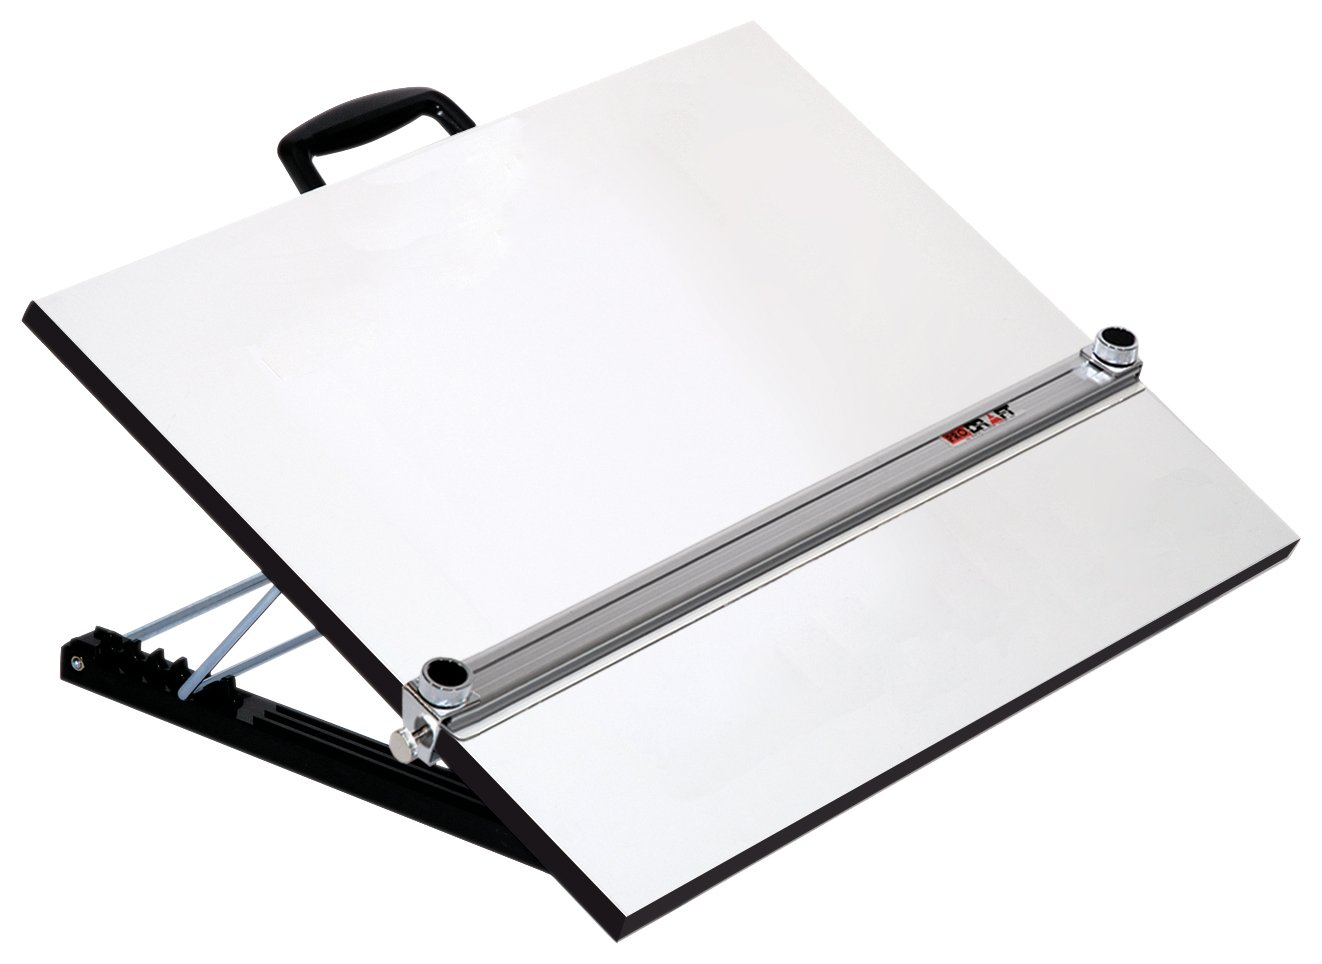 Martin Adjustable Angle Parallel Drawing Board, XX Large by Martin